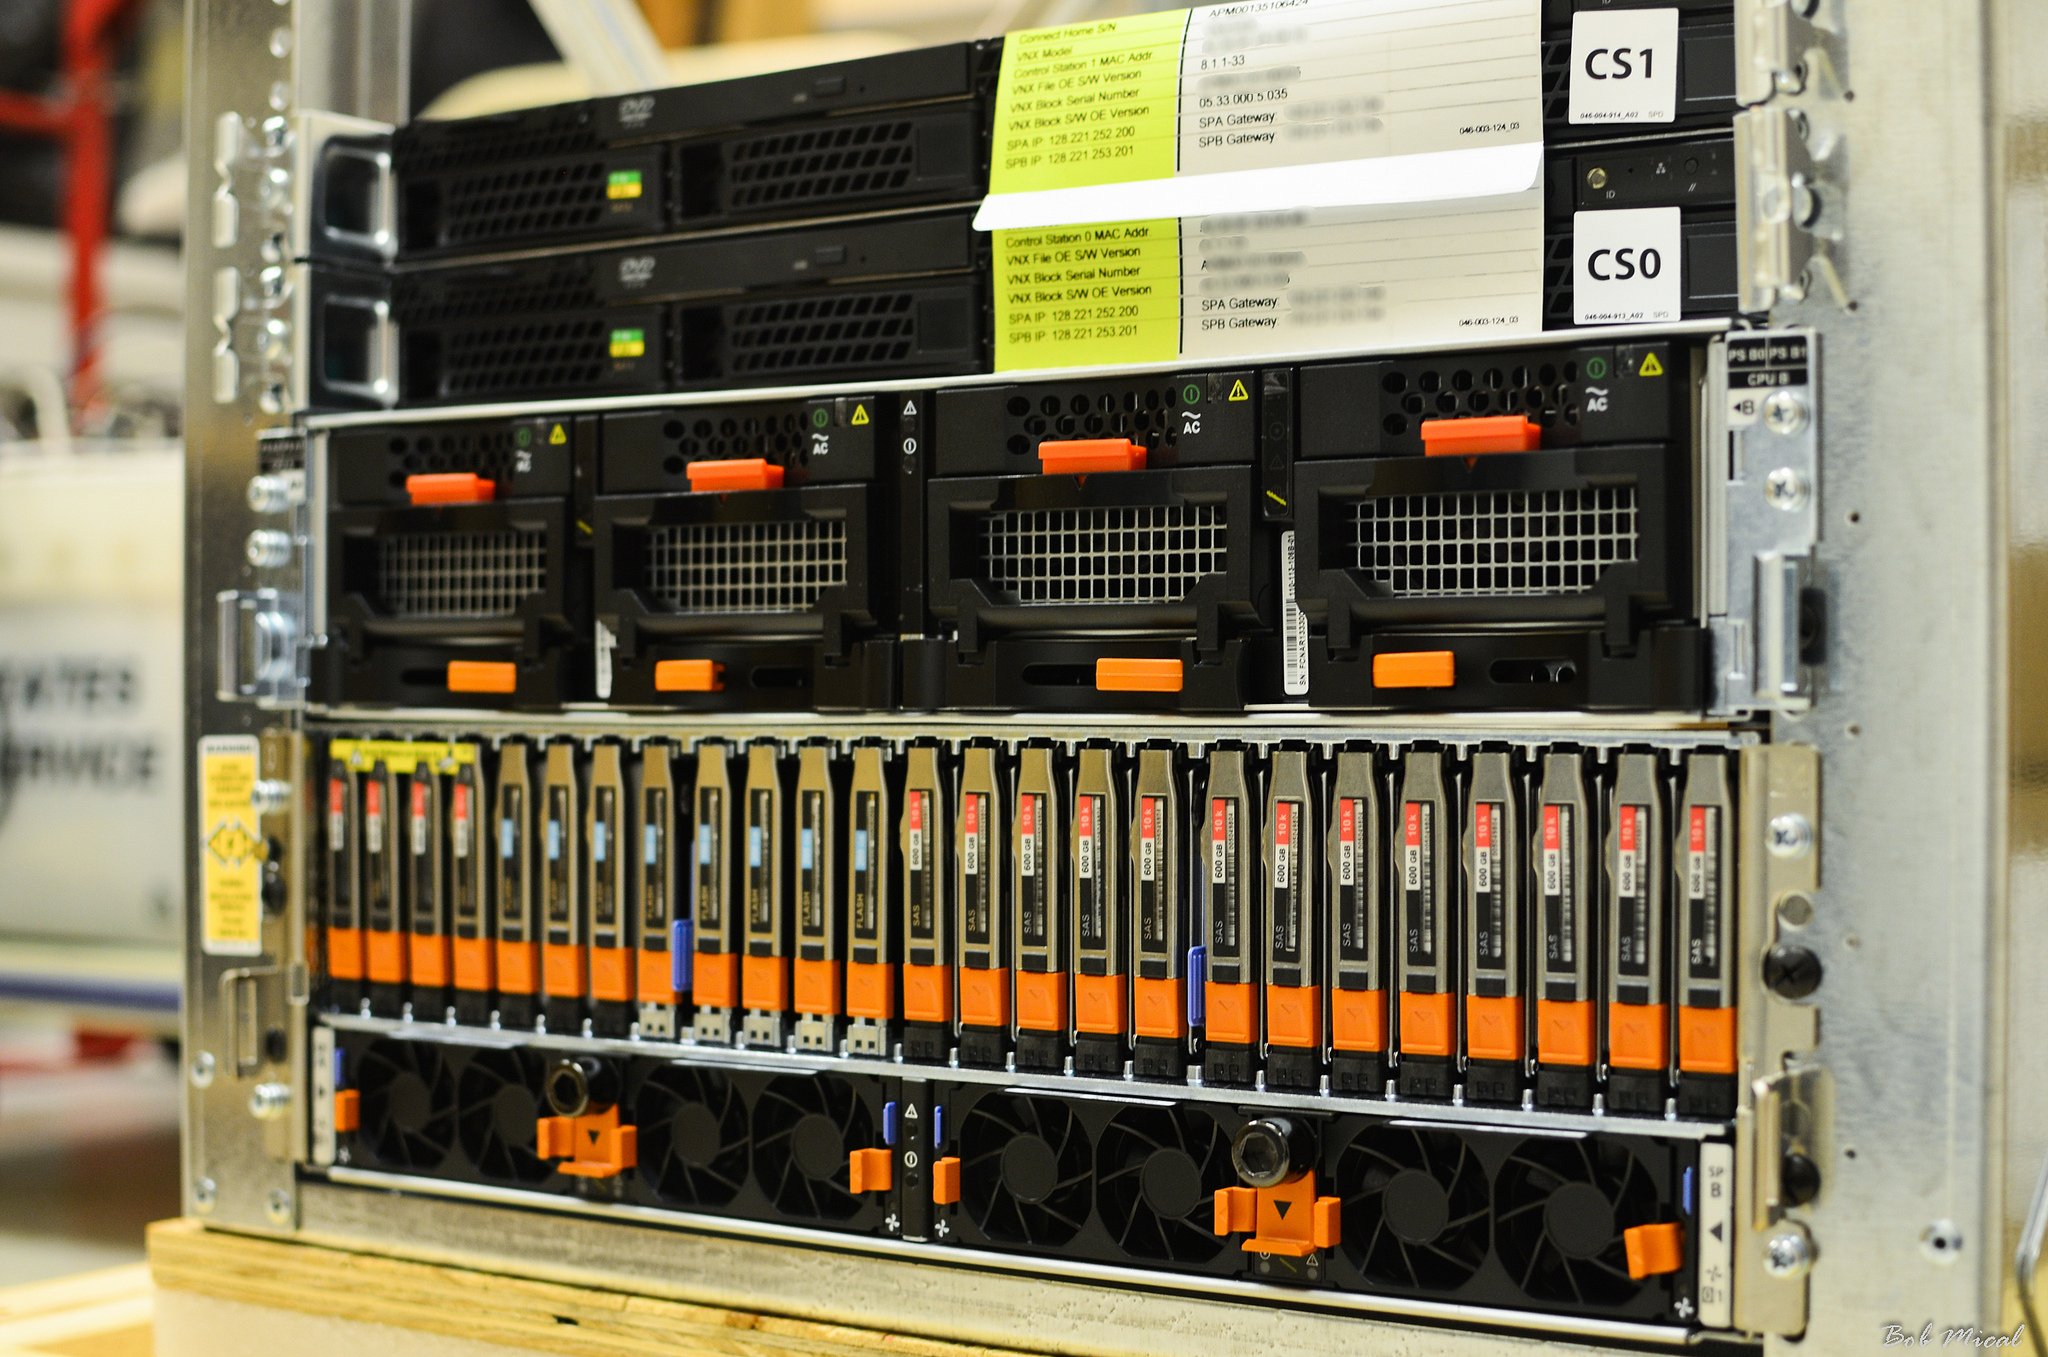 Egnyte offers up its cloudy capabilities to EMC storage boxes